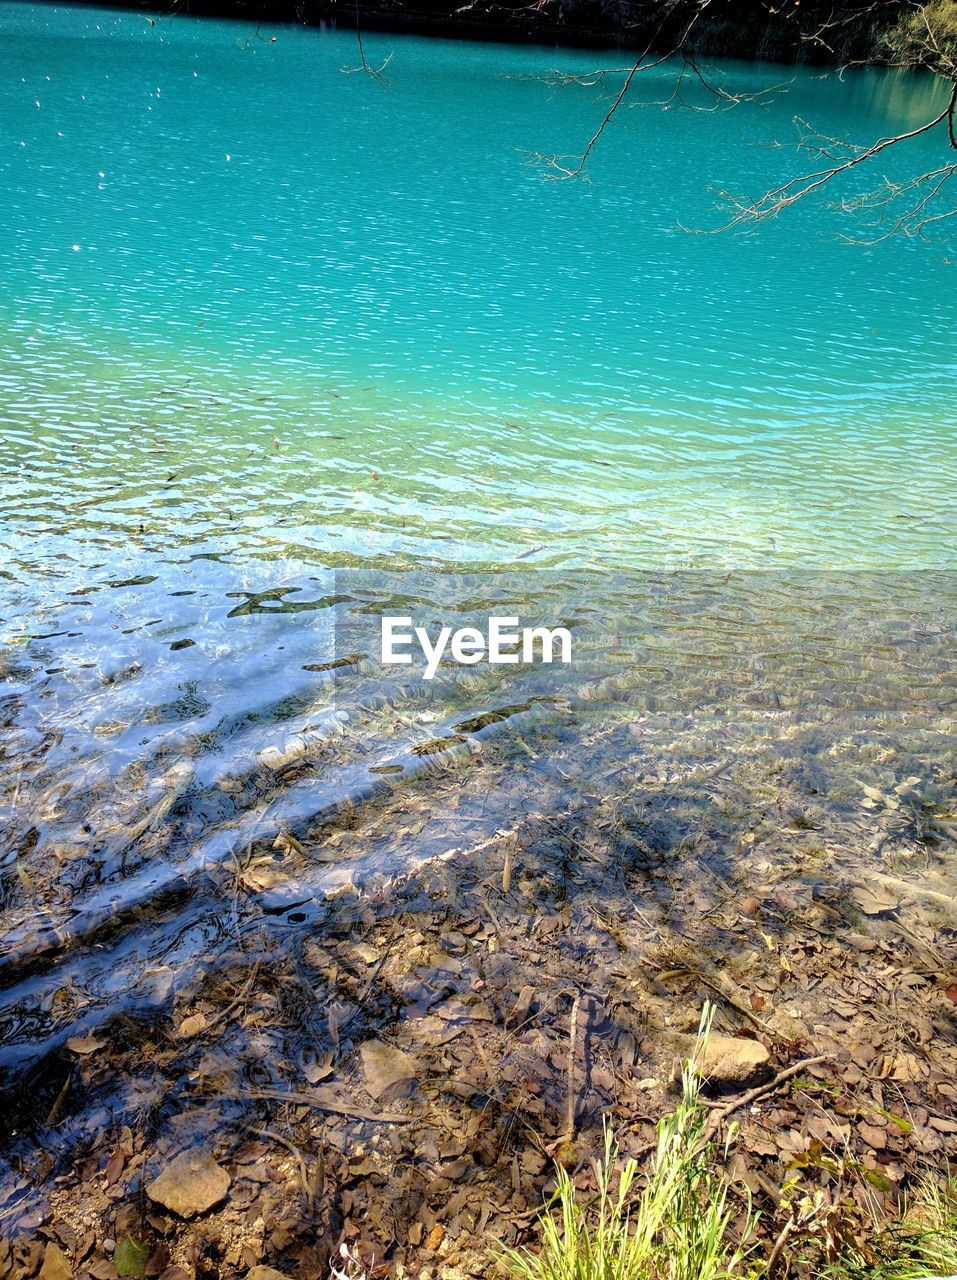 water, nature, rippled, no people, beauty in nature, tranquility, outdoors, sea, day, underwater, shallow, scenics, sea life, undersea